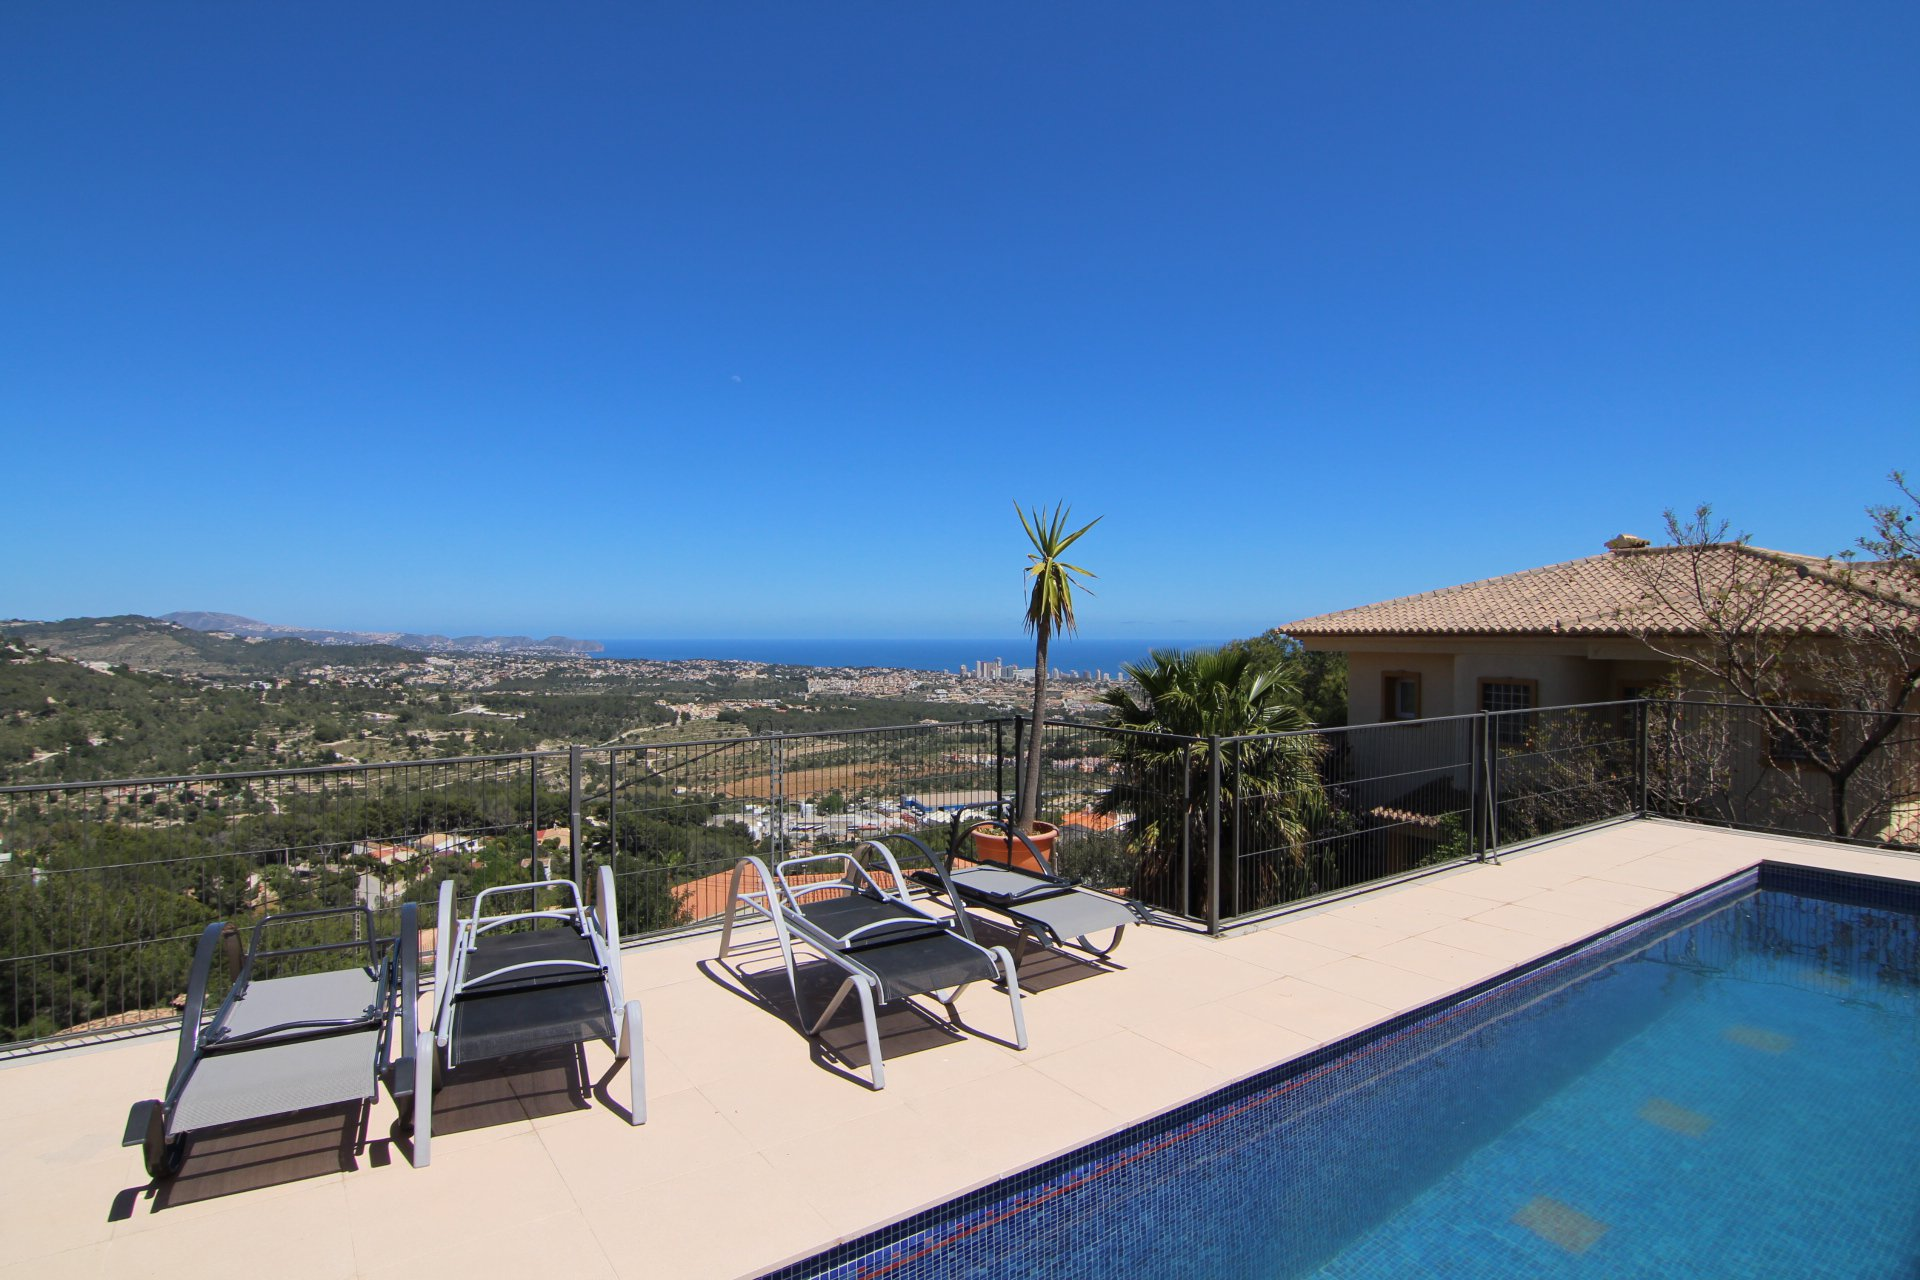 3bed/bath villa on 1 storey with spectacular views